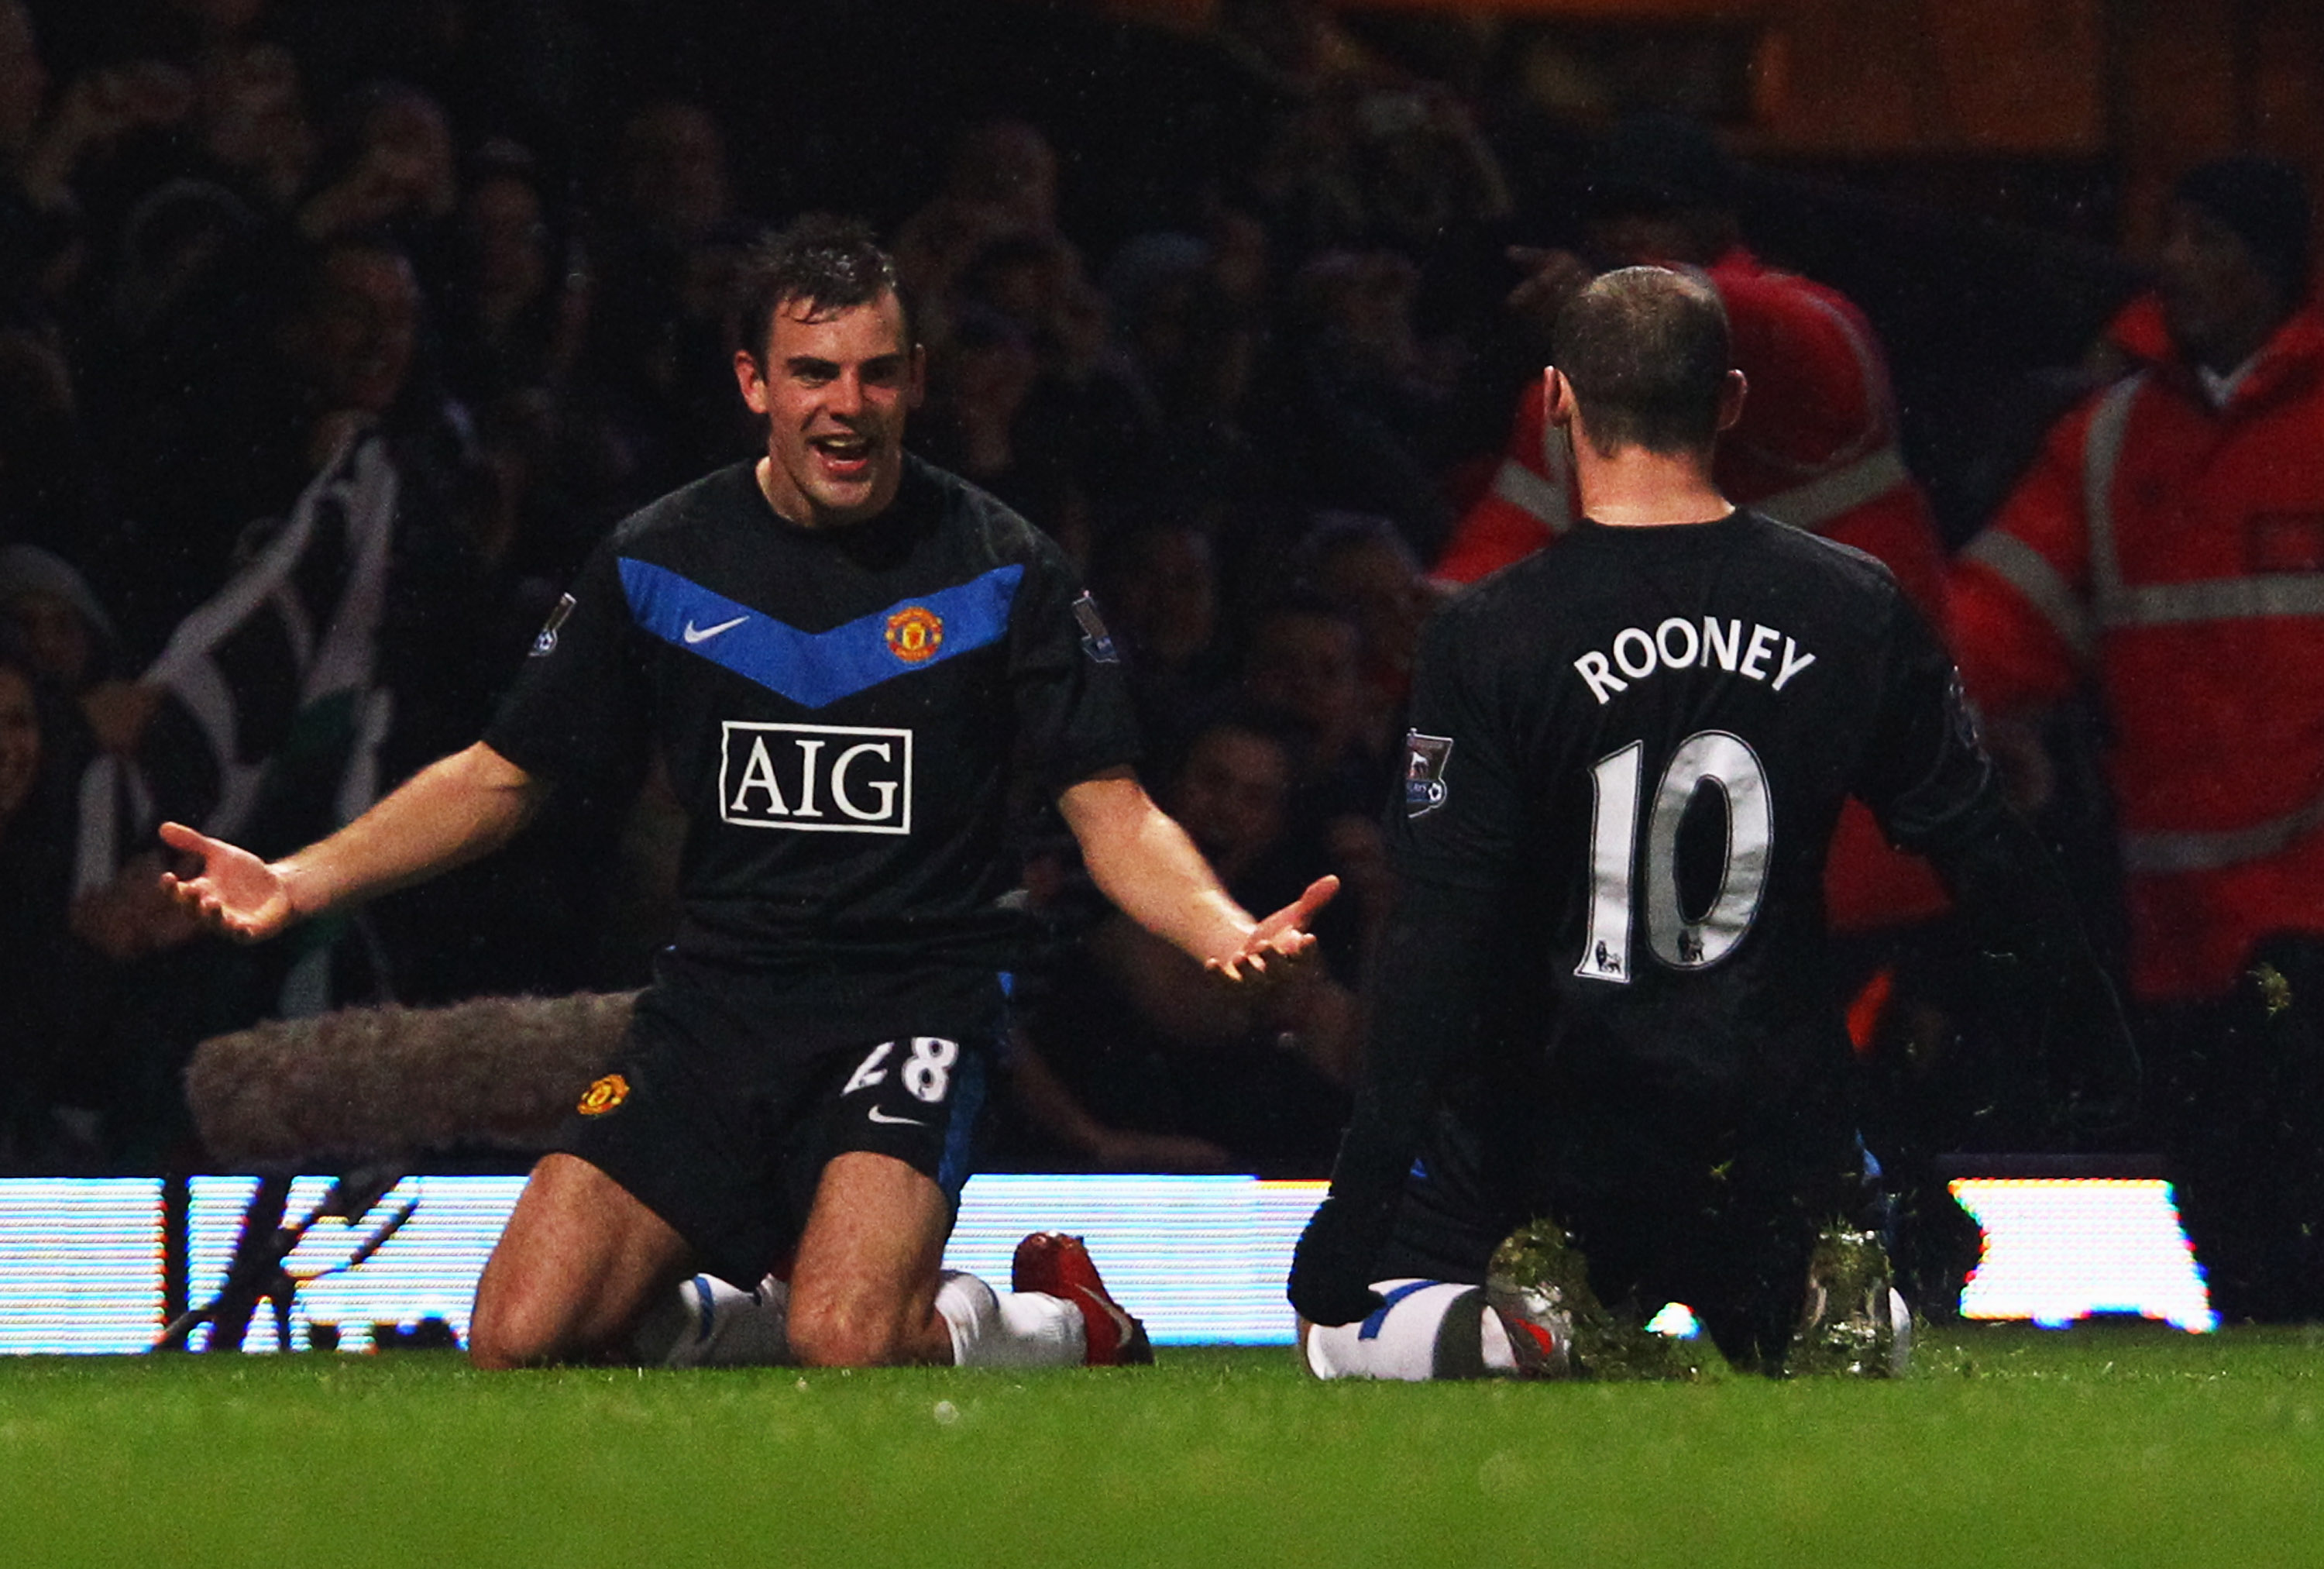 LONDON, ENGLAND - DECEMBER 05:  Darron Gibson of Manchester United celebrates with team mate Wayne Rooney (10) as he scores their second goal during the Barclays Premier League match between West Ham United and Manchester United at Upton Park on December